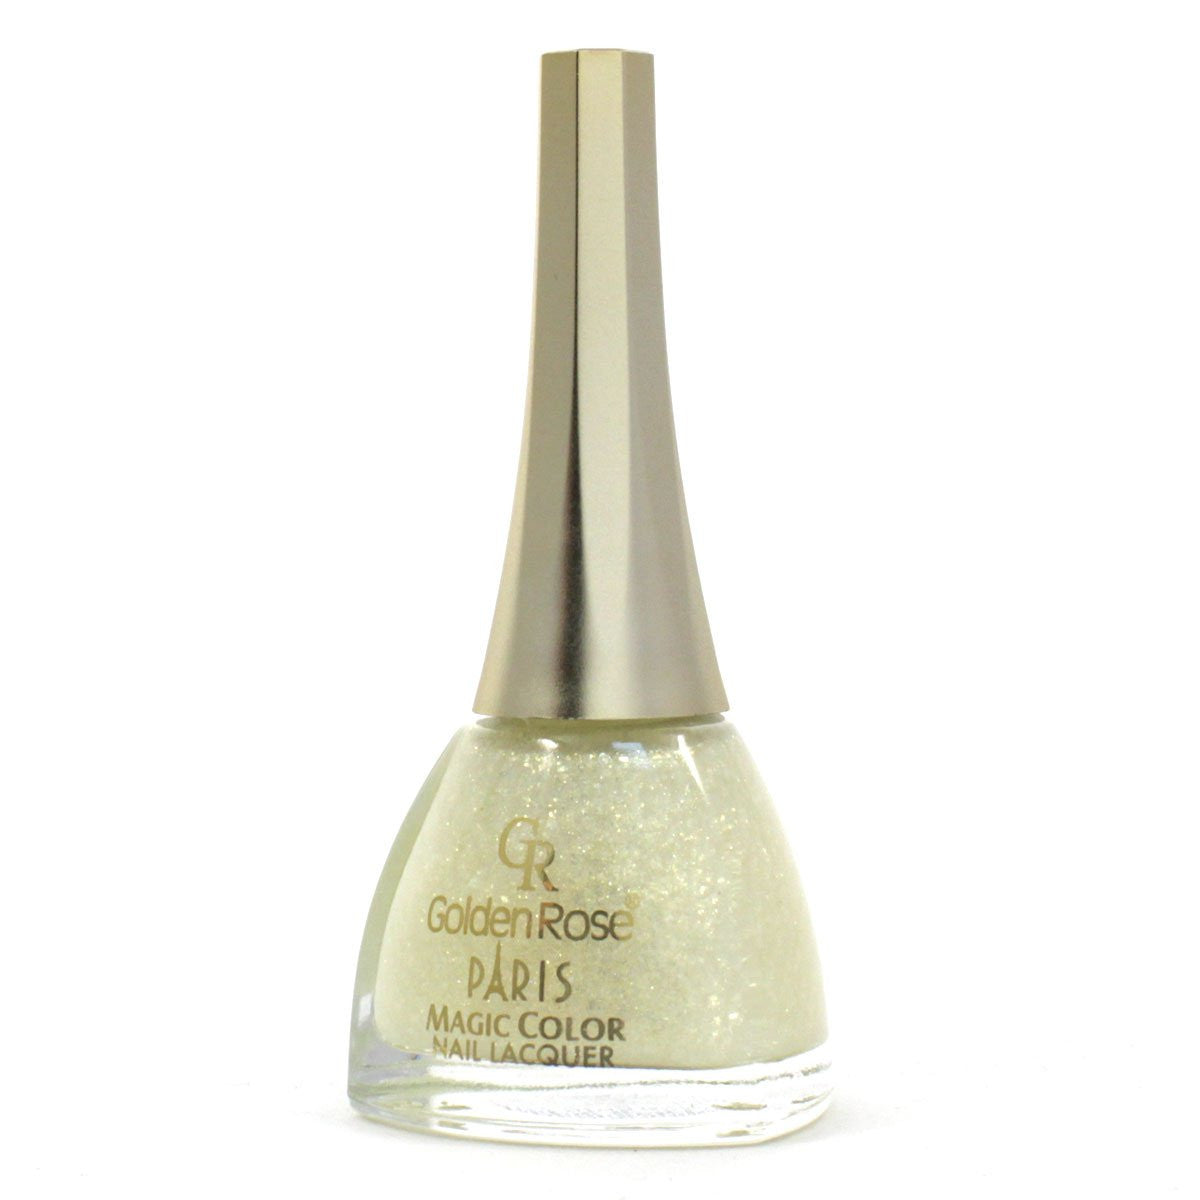 Golden Rose Paris Magic Color Nail Polish eveline-cosmetics.myshopify.com